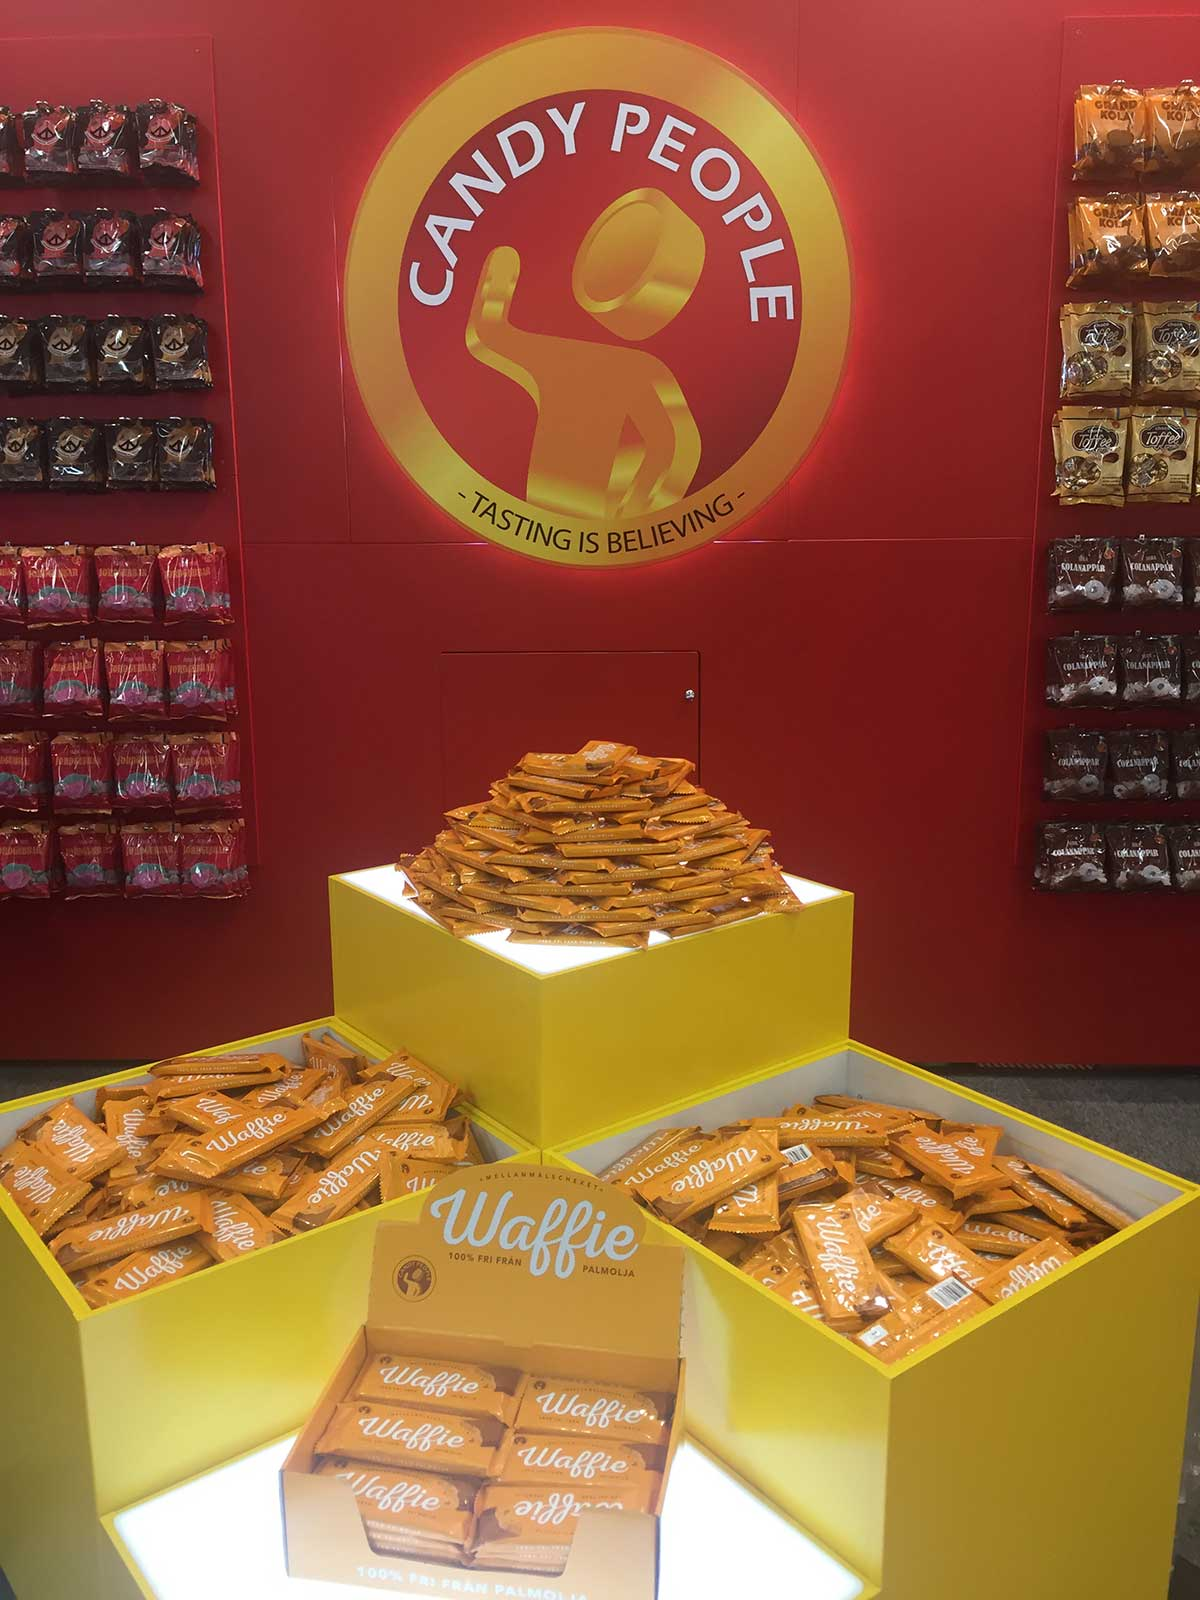 Candy People stand på International Sweets and Biscuits (ISM) 2017. Foto: Candy People